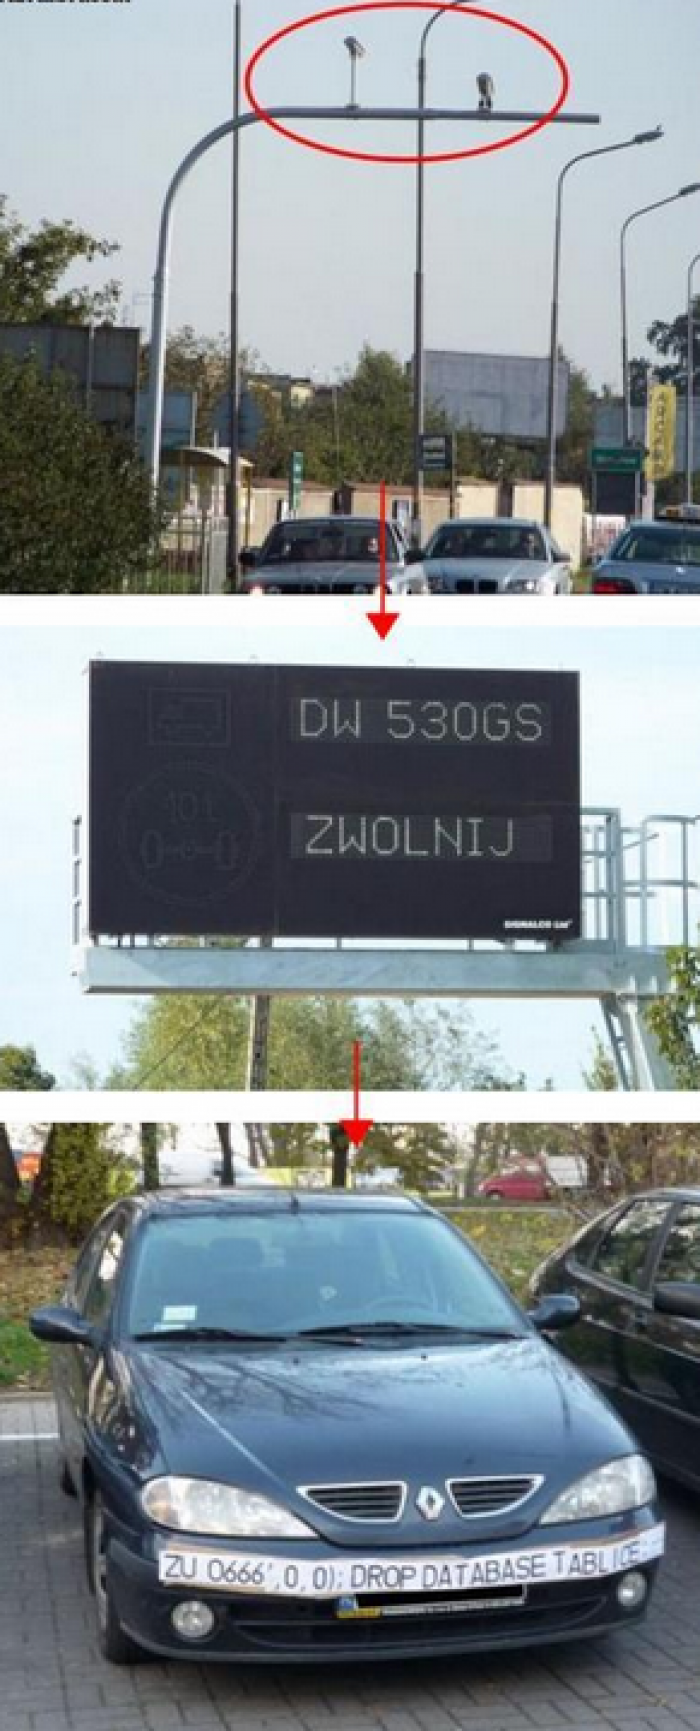 hacking the traffic cameras